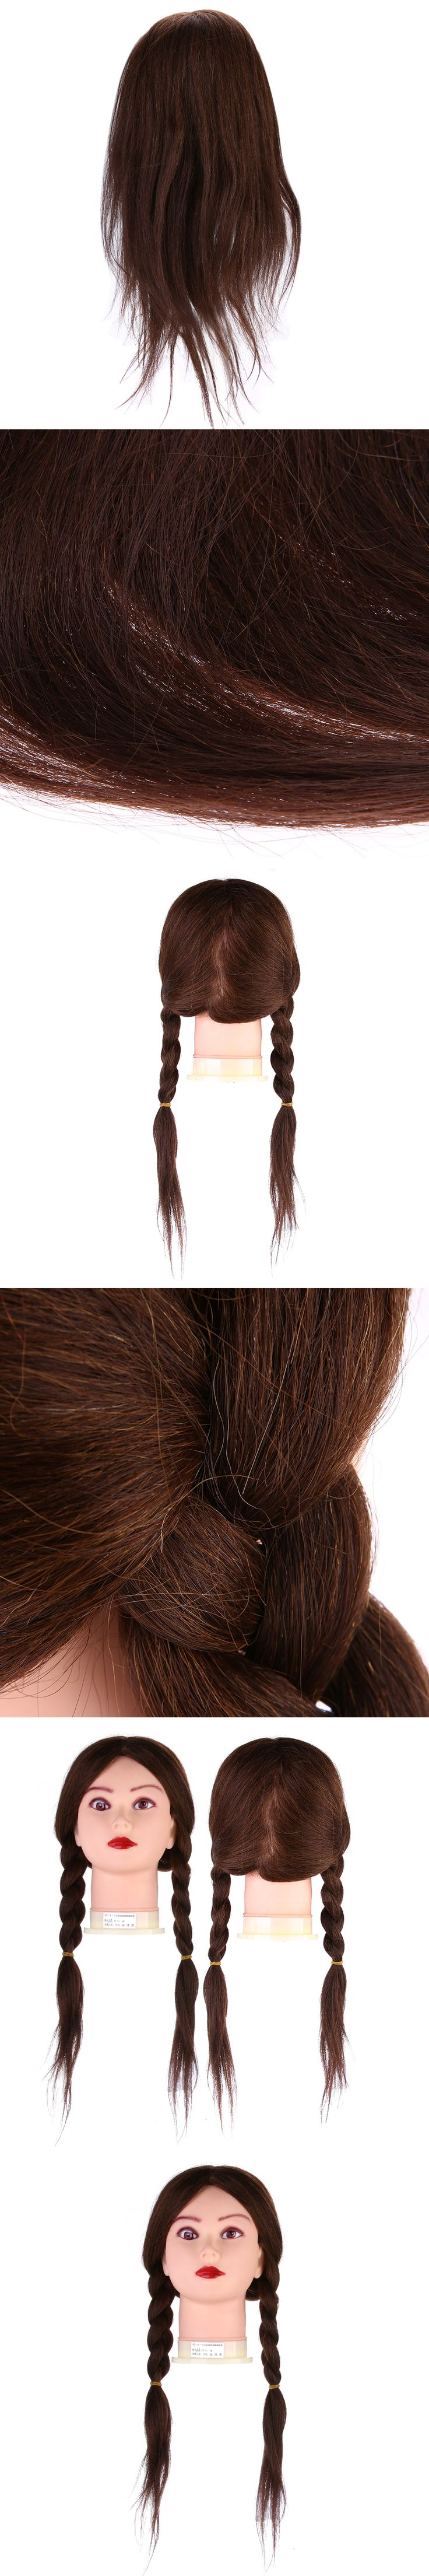 Hairdressing Training Mannequin Practice Head Brown Long Human Hair for salon and personal use